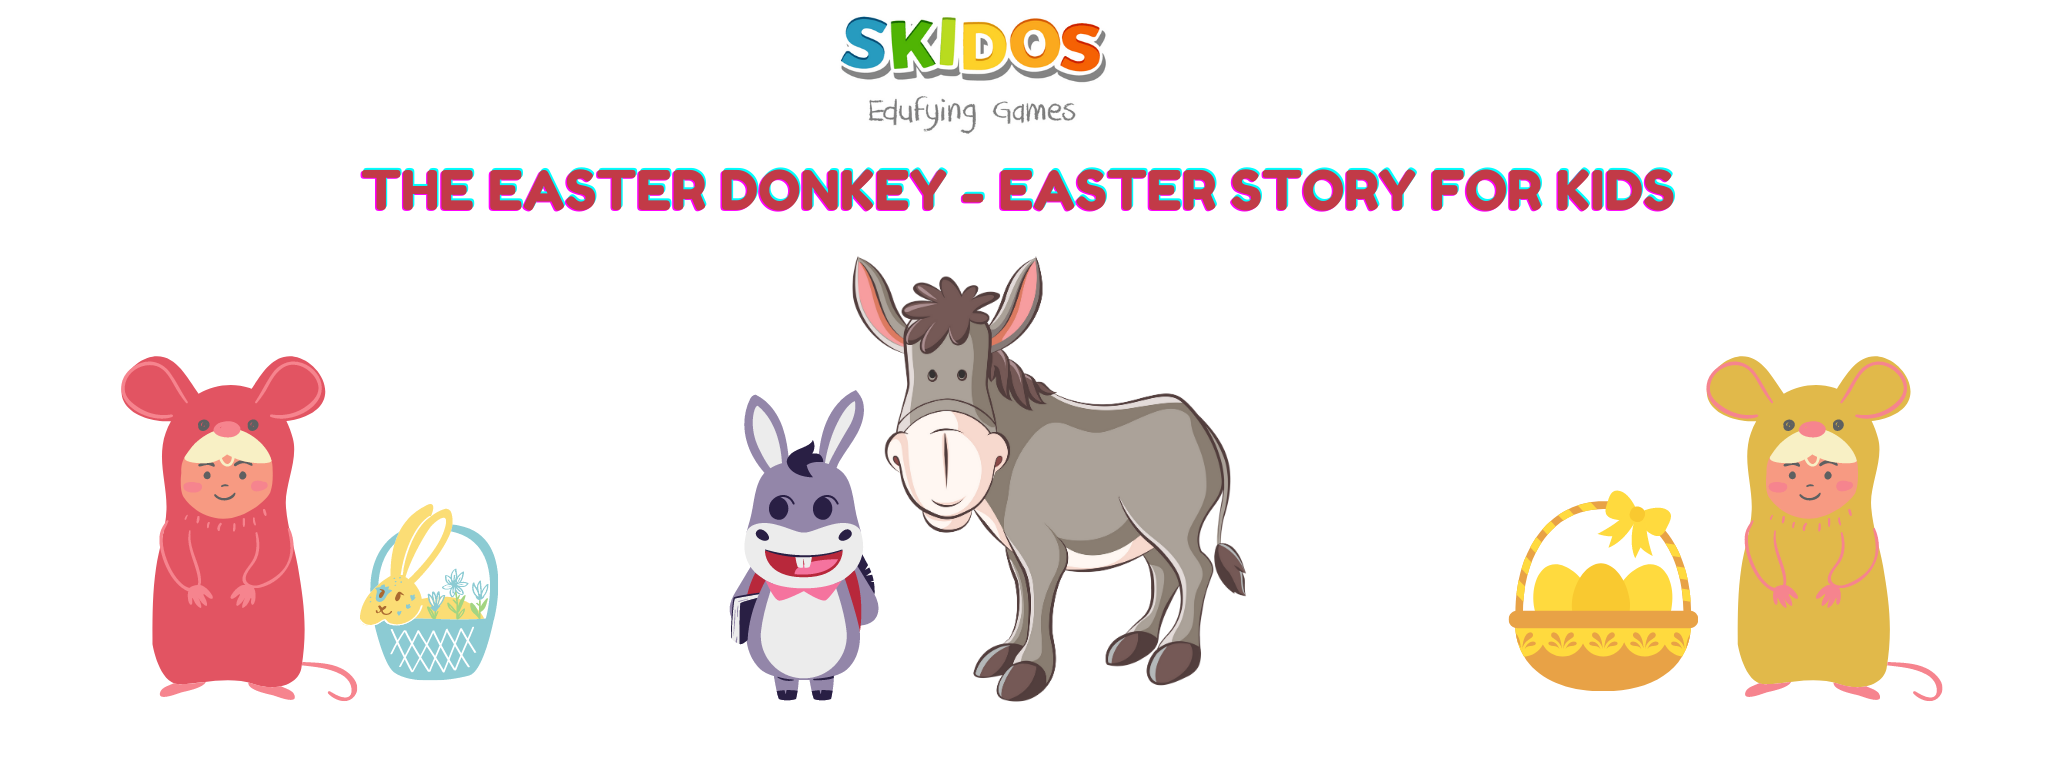 The Easter donkey - Easter story for kids